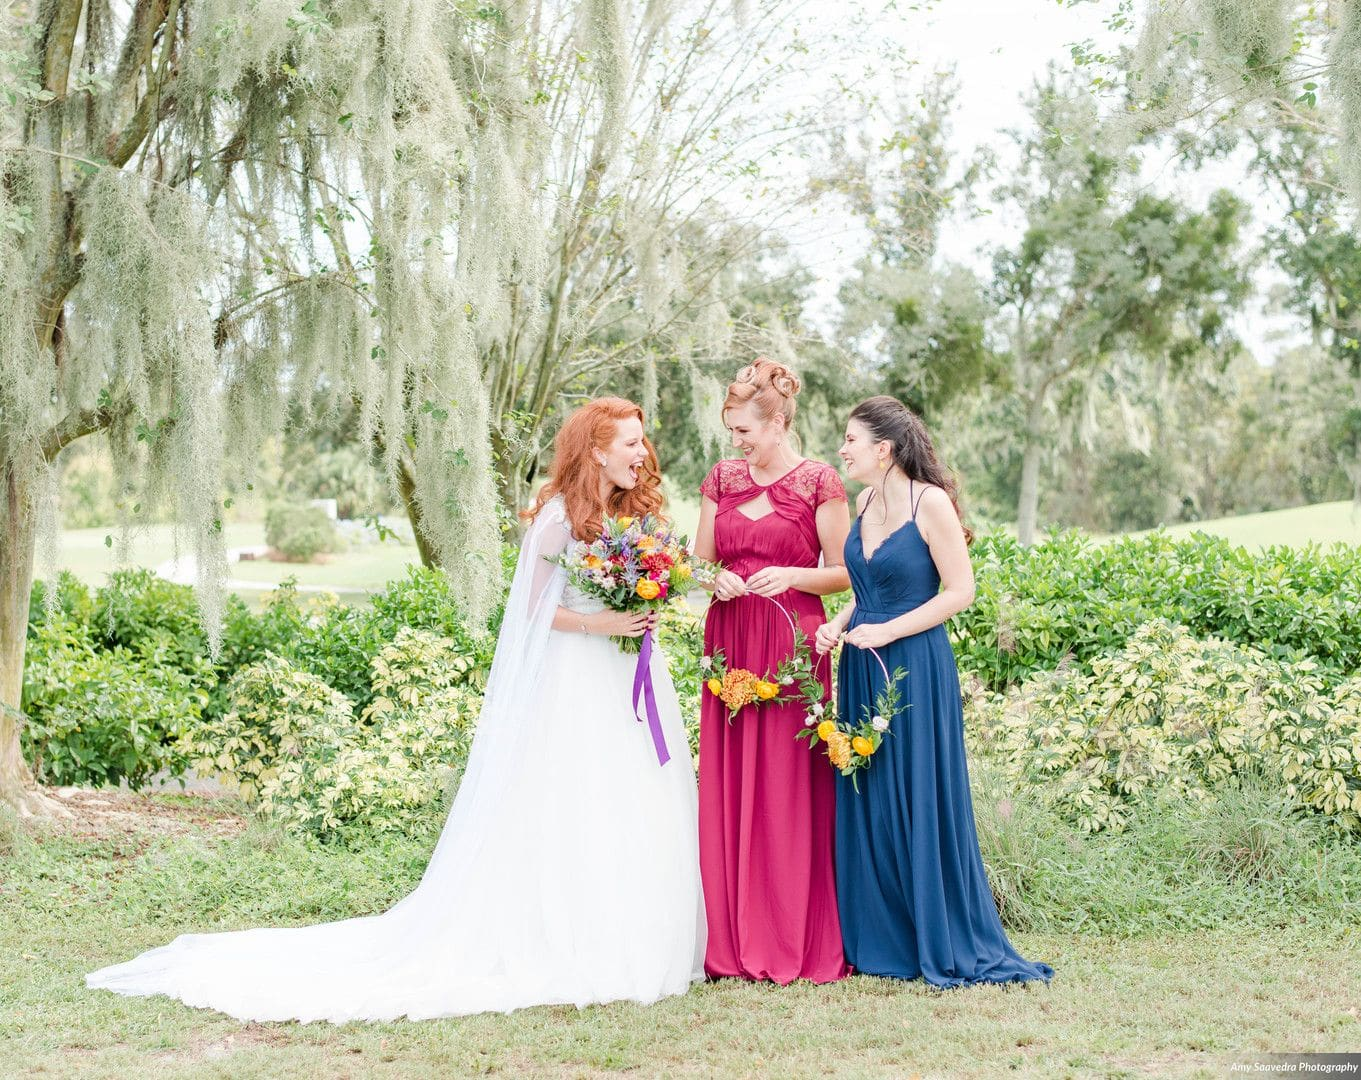 red haired bride with wedding dress on and white cape stands to the left looking to the right at two woman in teal and magenta dress holding hoop floral bouquets